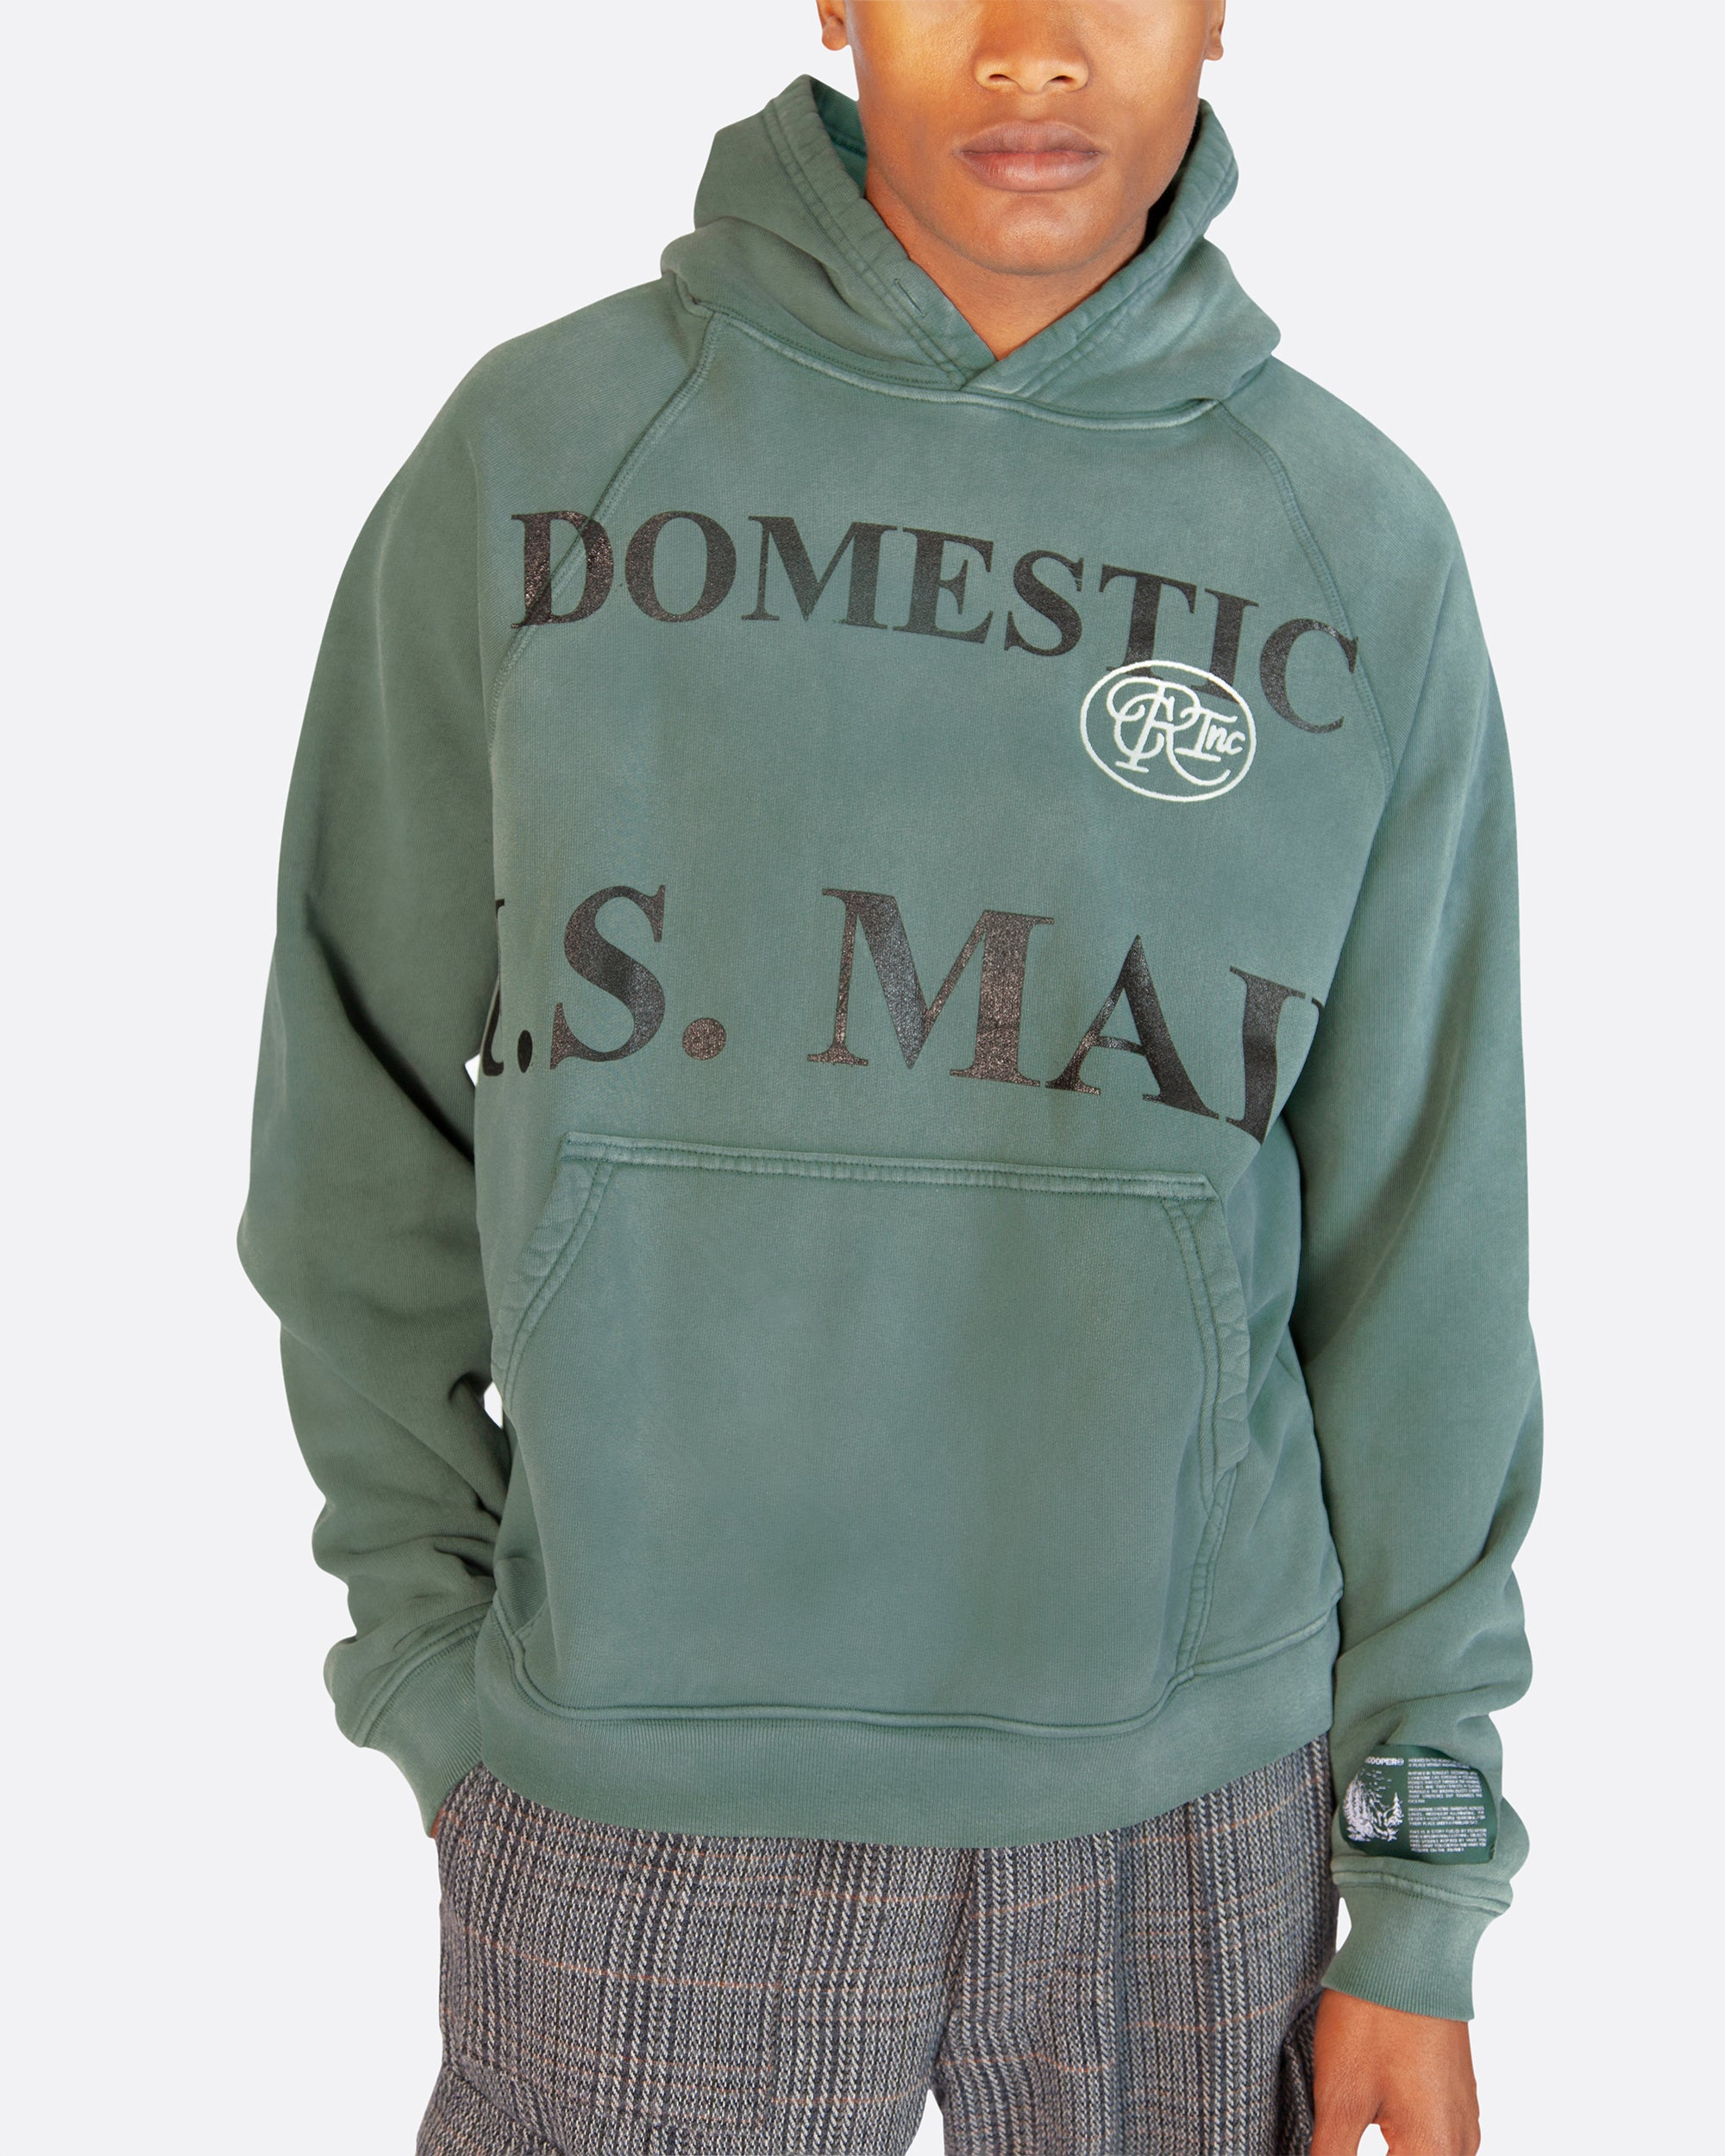 Domestic Mail Aged Hooded Sweatshirt in Green